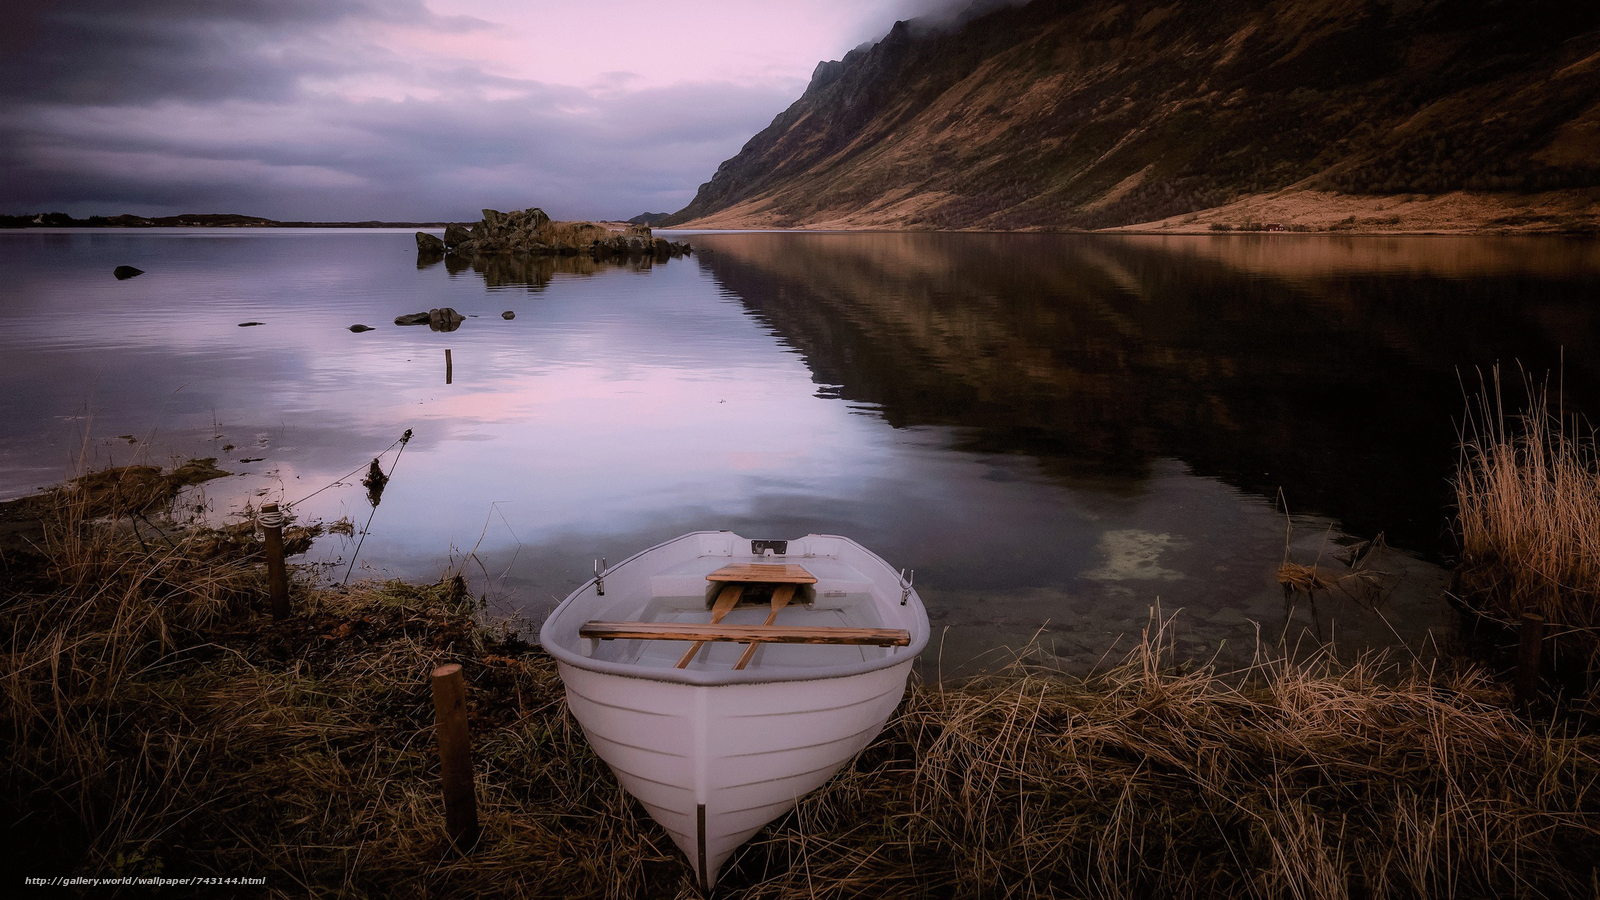 a boat, boats, landscape, nature, water, River, lake, sunset, peace, relaxation, the mountains, Coast, grass, autumn, reflection, Mainly cloudy, night